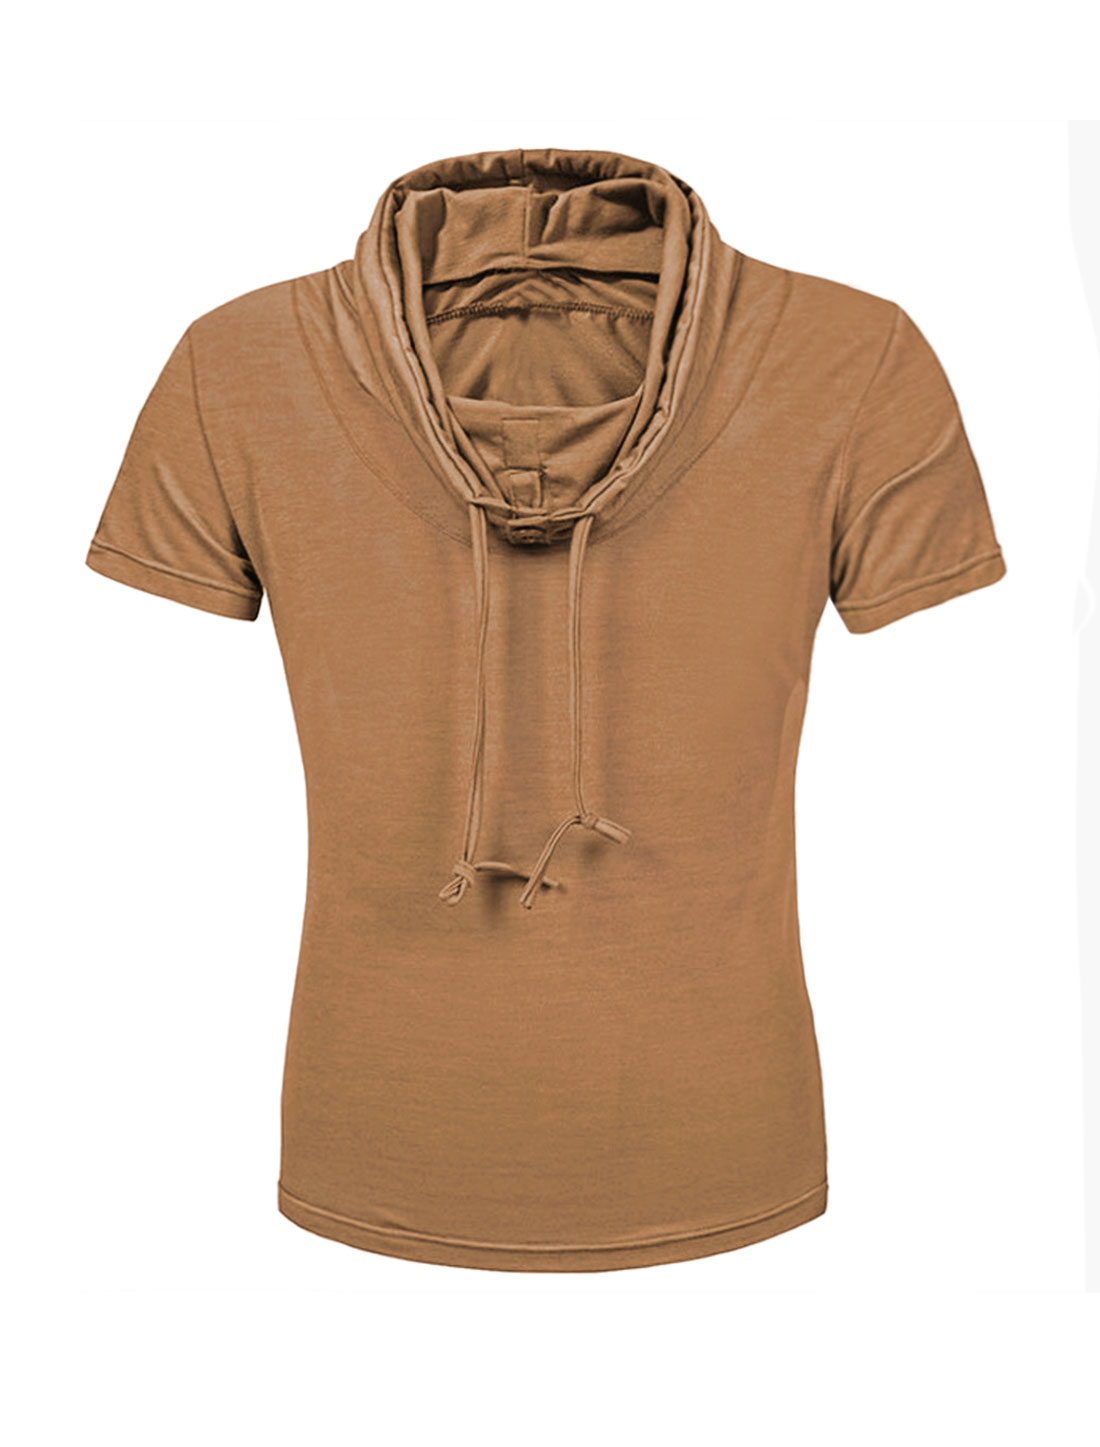 Men Buttoned Drawstring Cowl Neck Slim Fit Tee Shirt Brown S